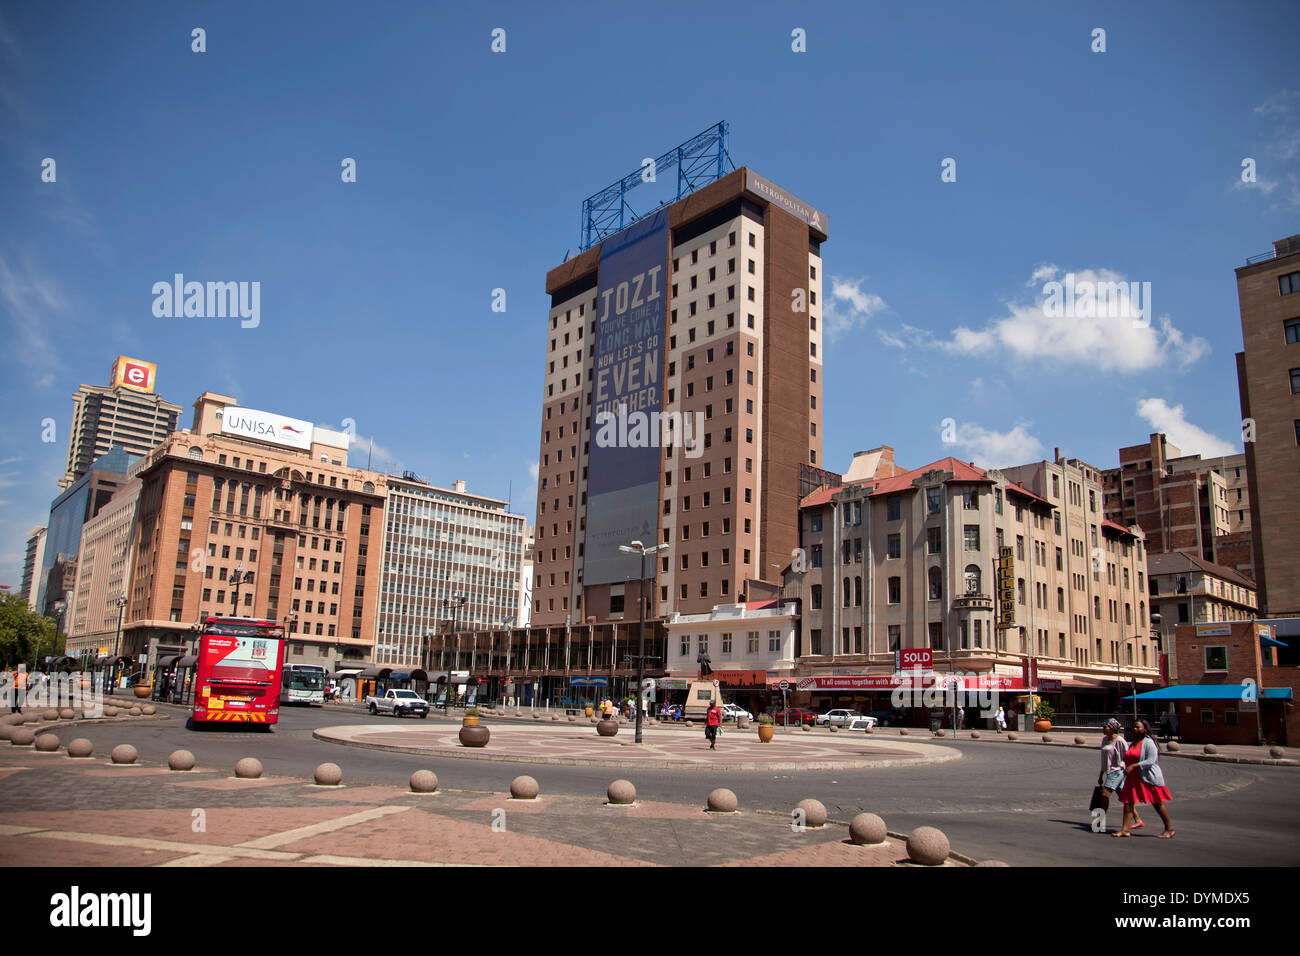 central Ghandi Square in Johannesburg, Gauteng, South Africa, Africa - Stock Image